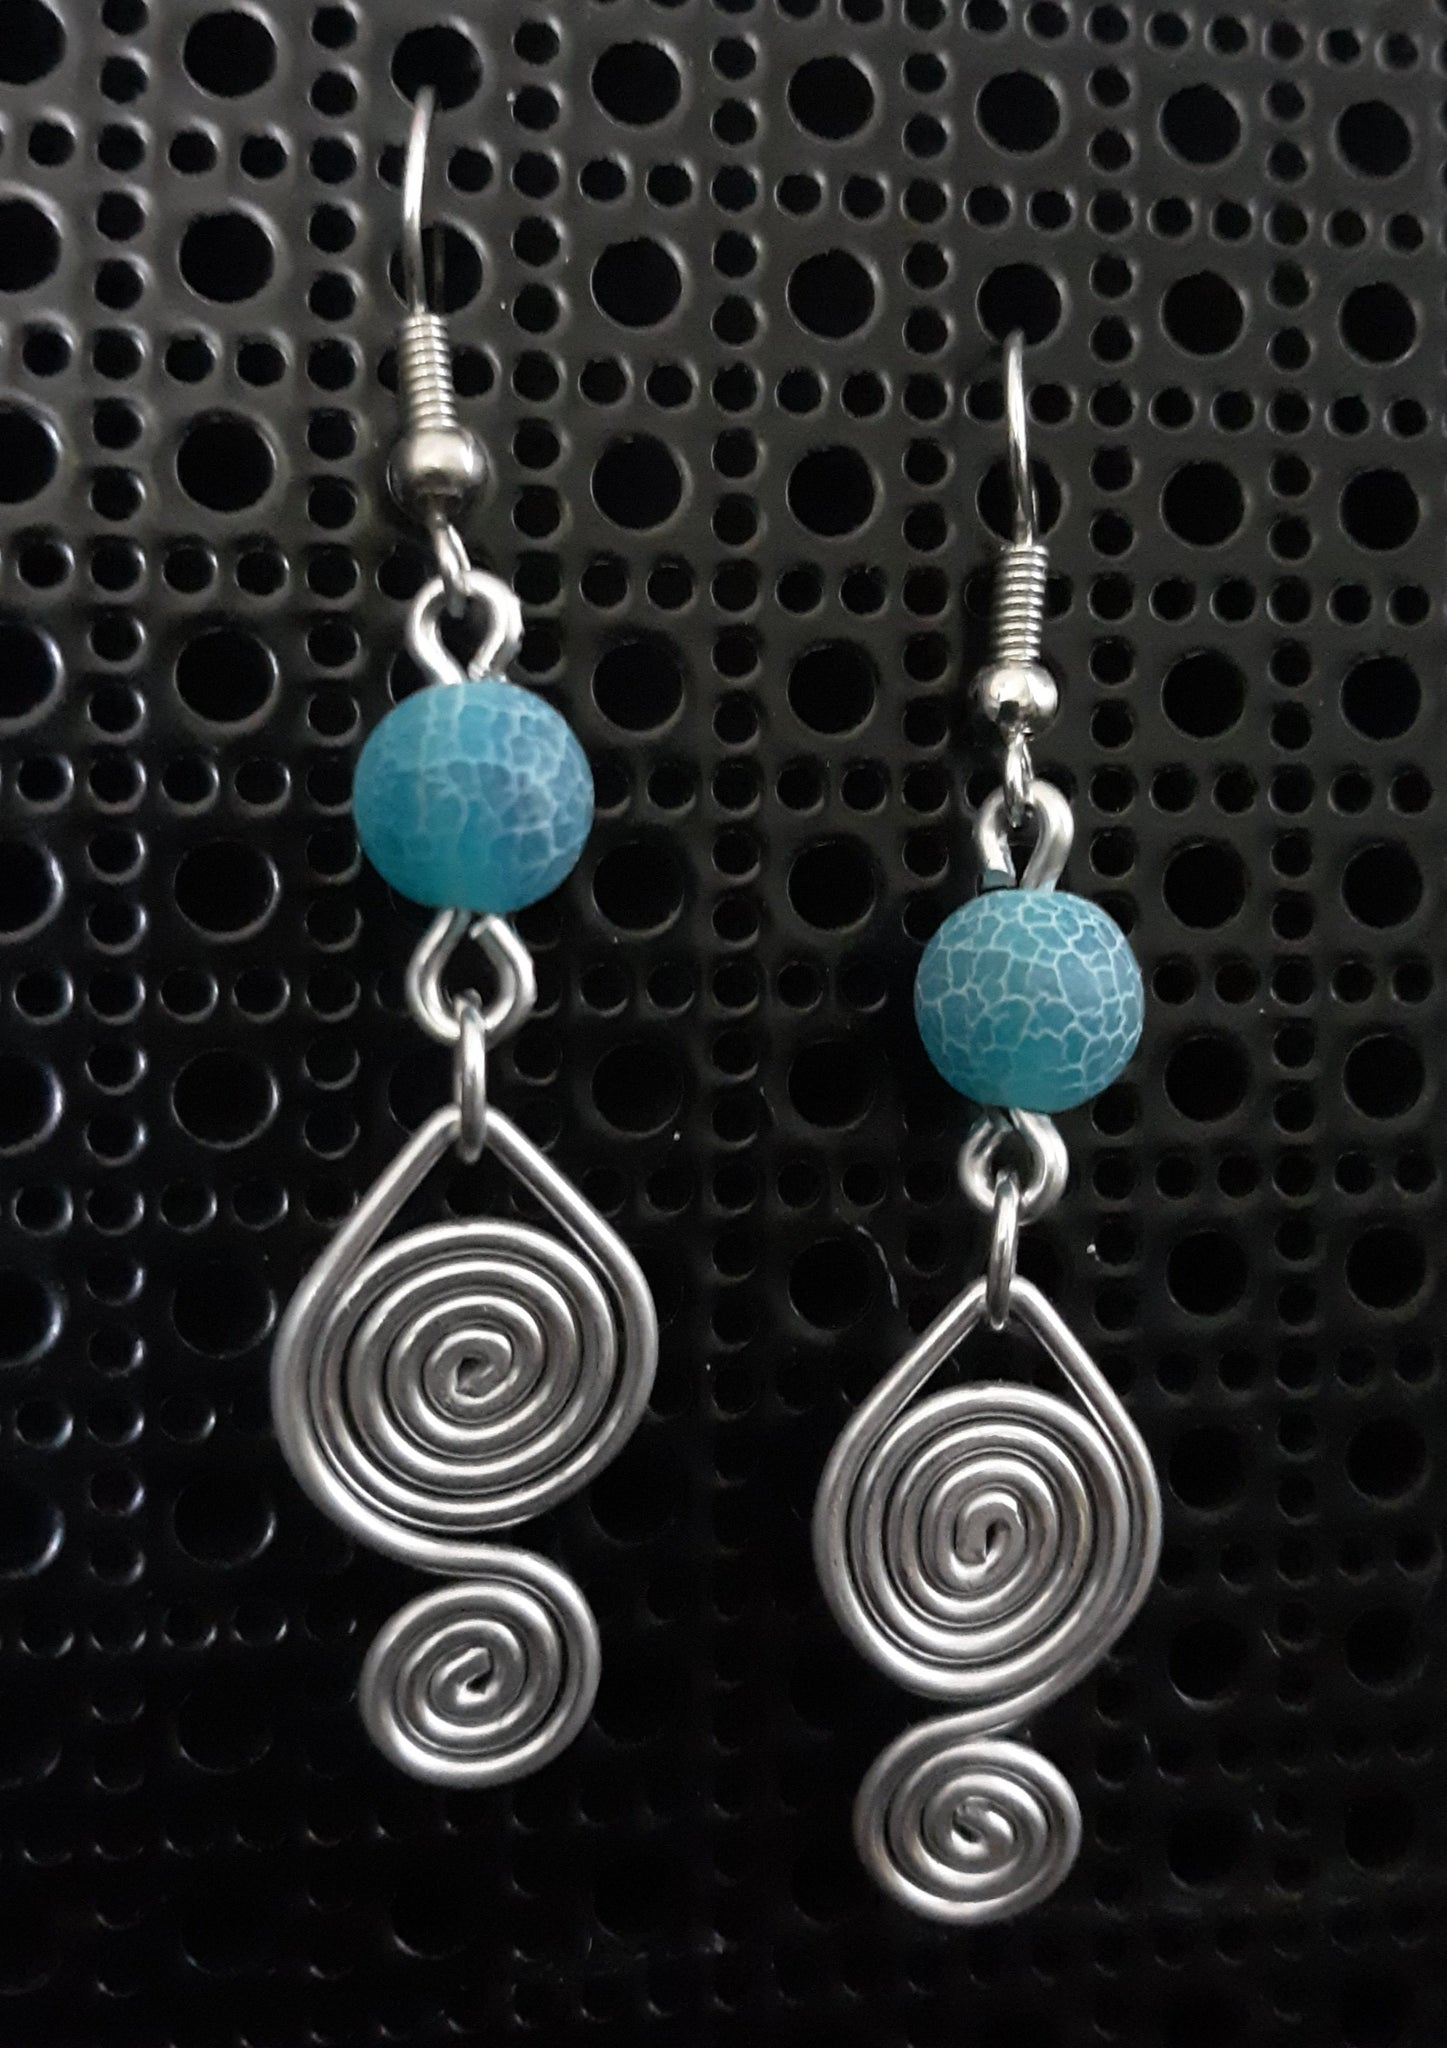 Handmade Aluminum Earrings with Blue Stone Bead